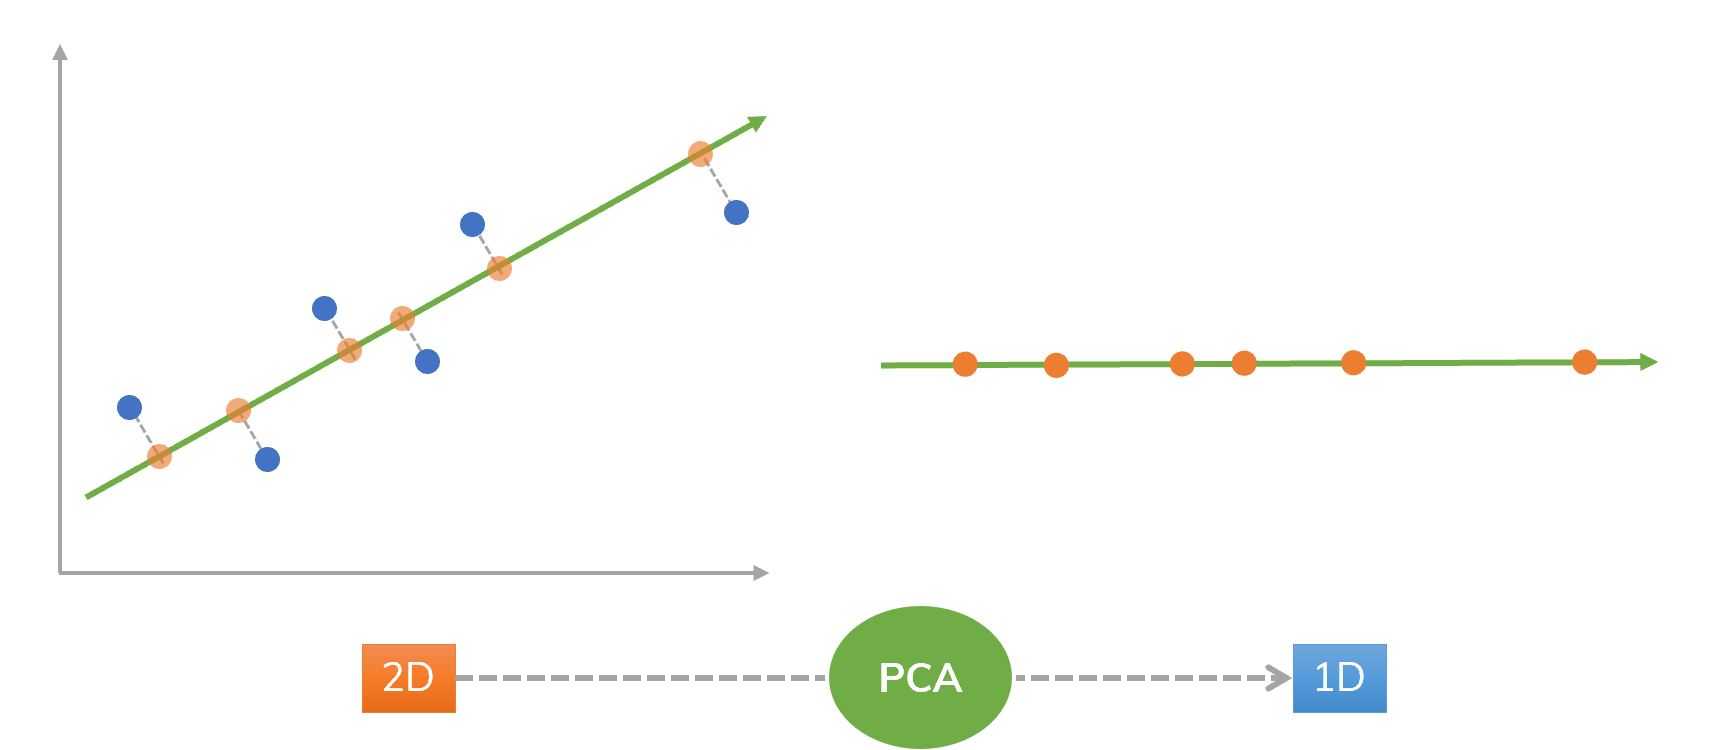 An idea of using PCA from 2D to 1D.